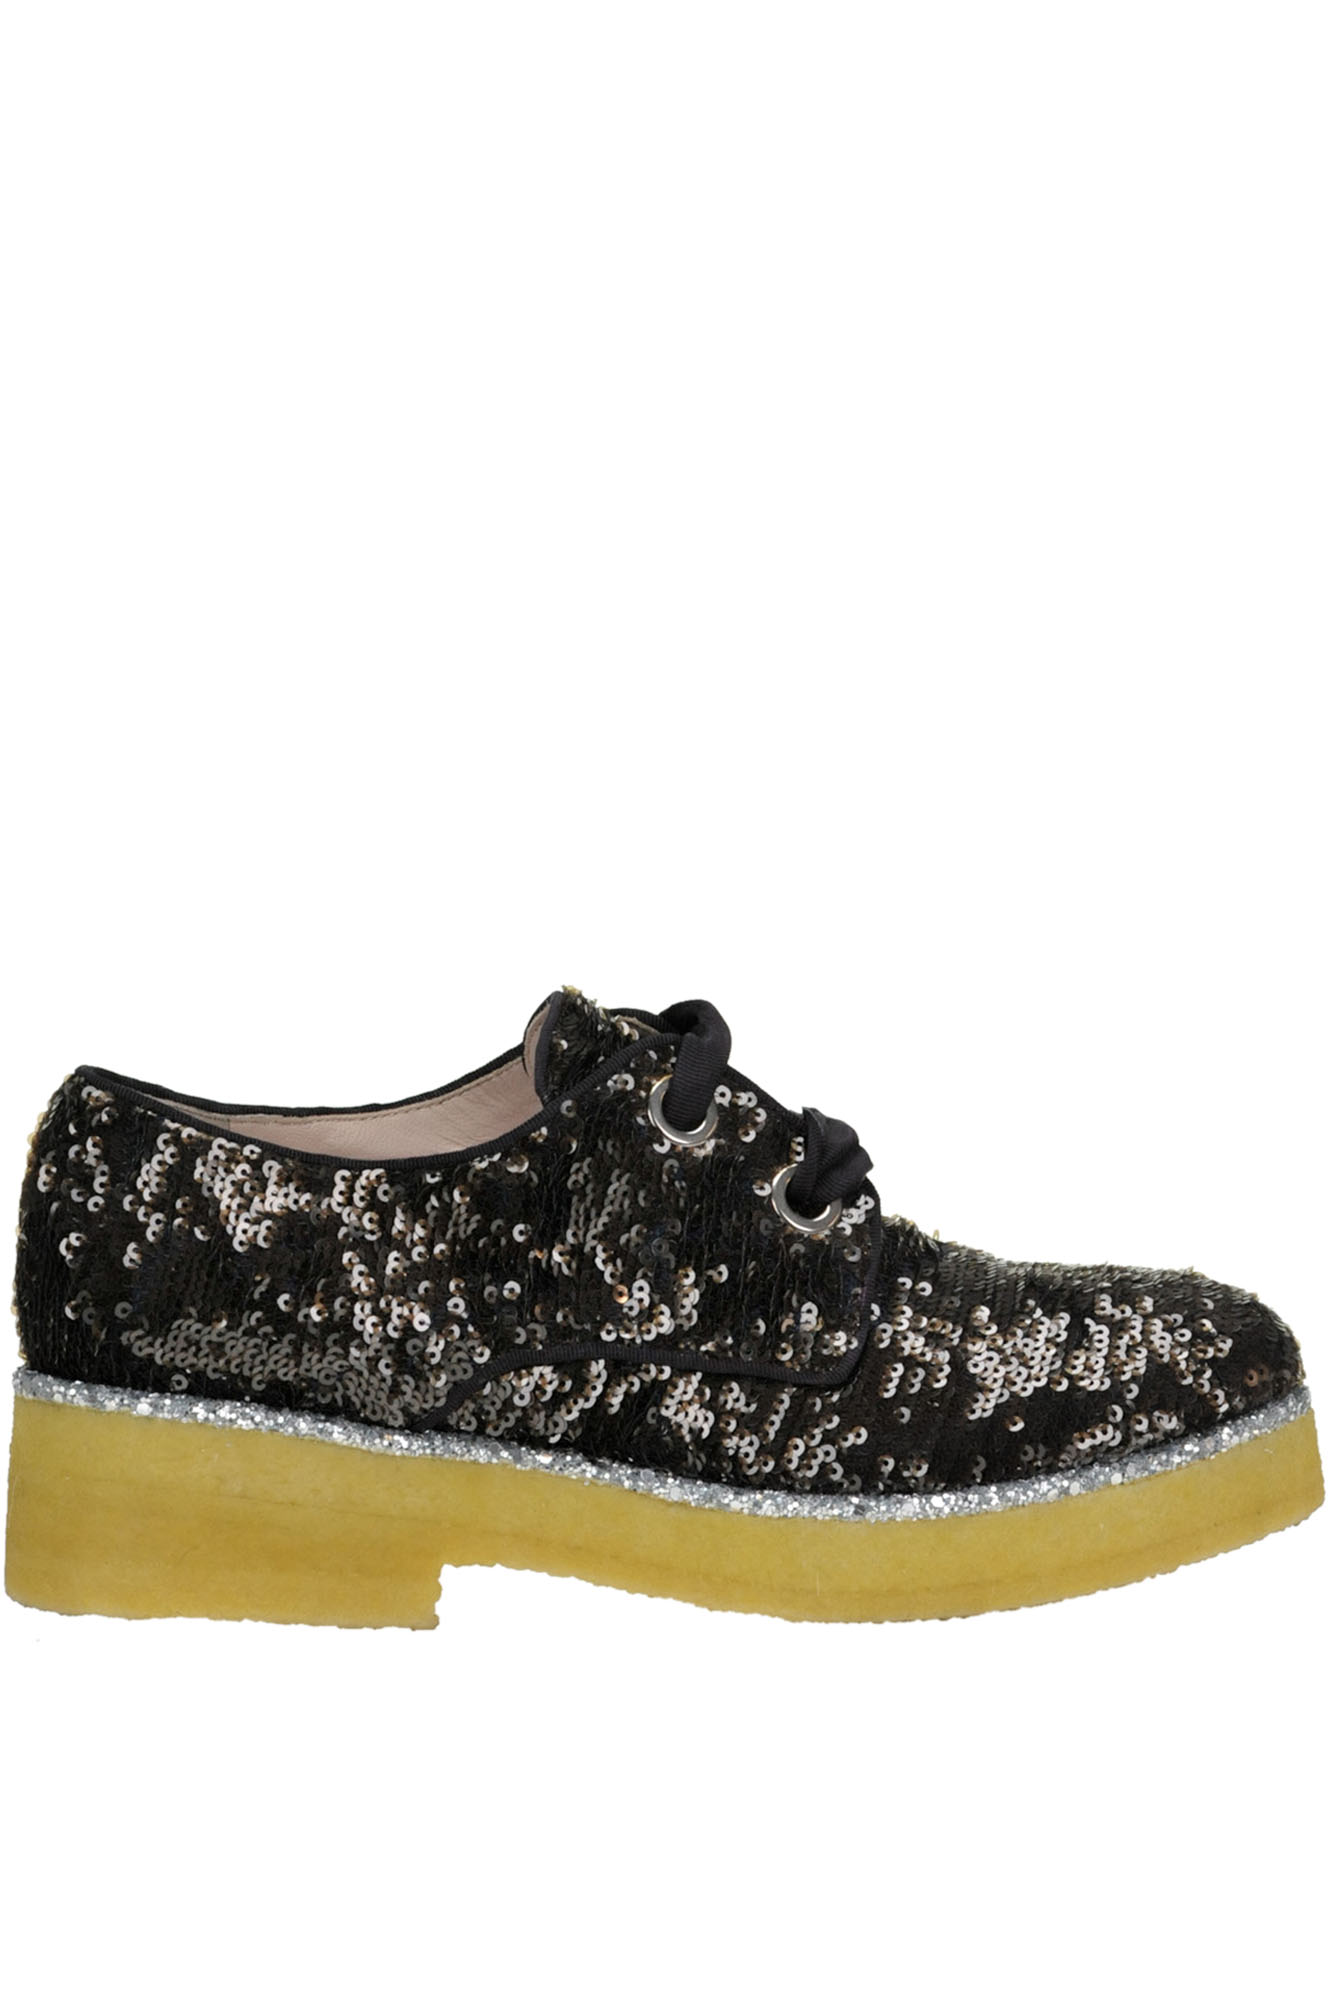 Alberto Gozzi SEQUINED LACE-UP SHOES